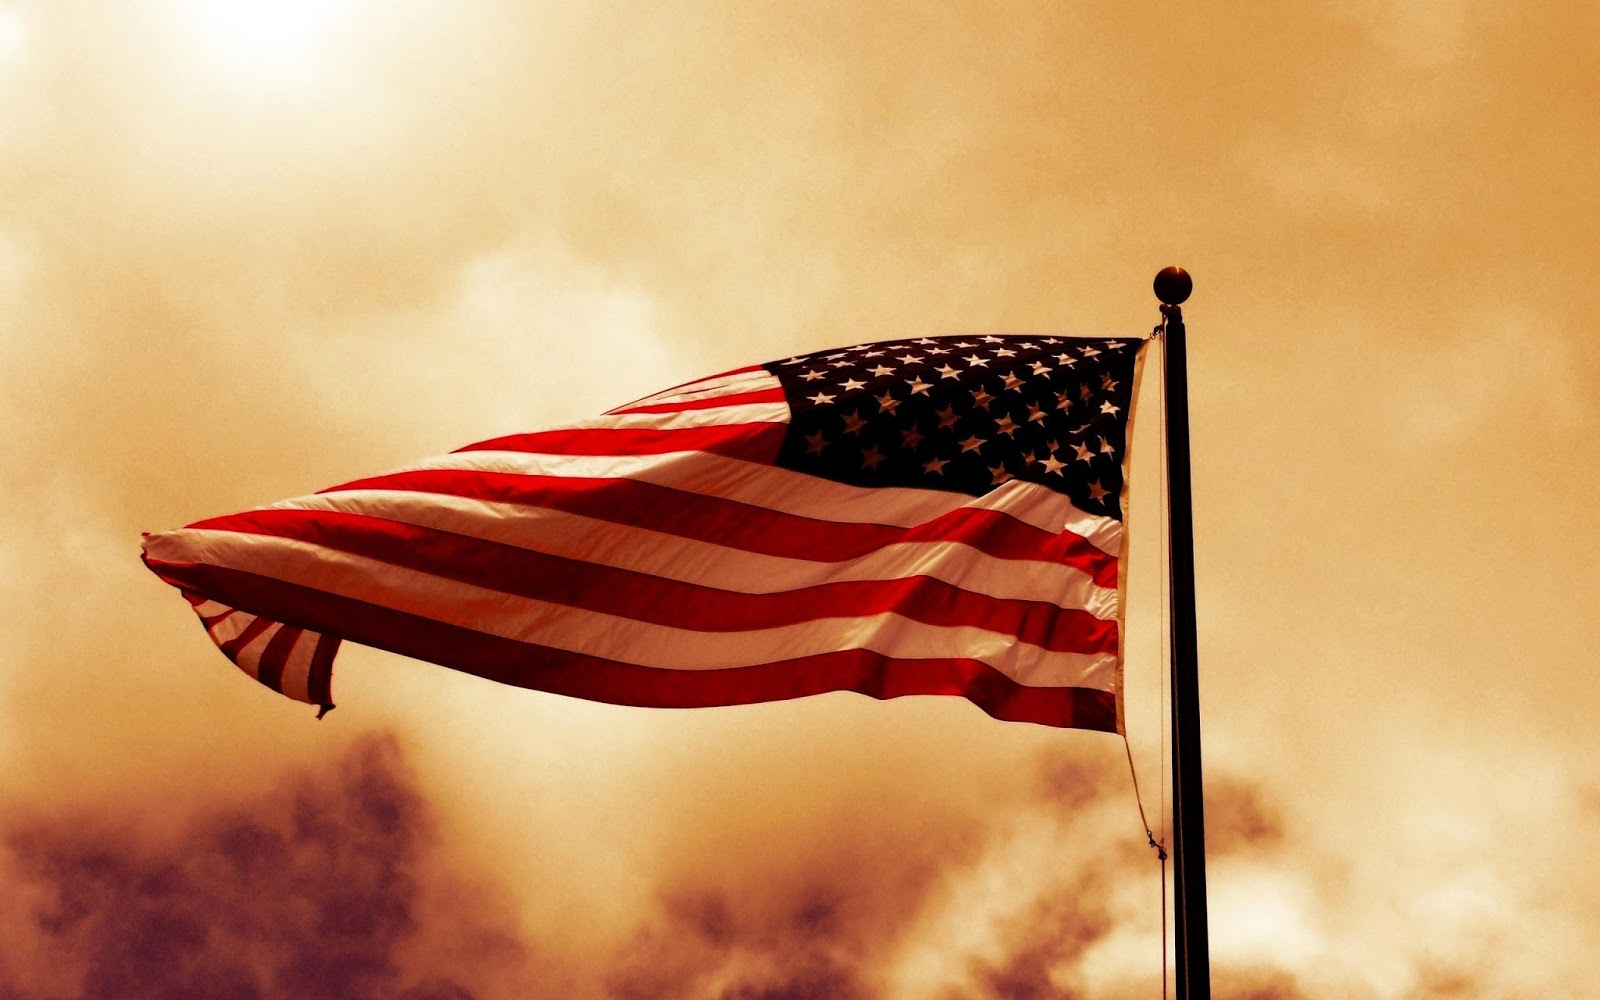 american flag hd wallpaper old american flag with black background 1600x1000